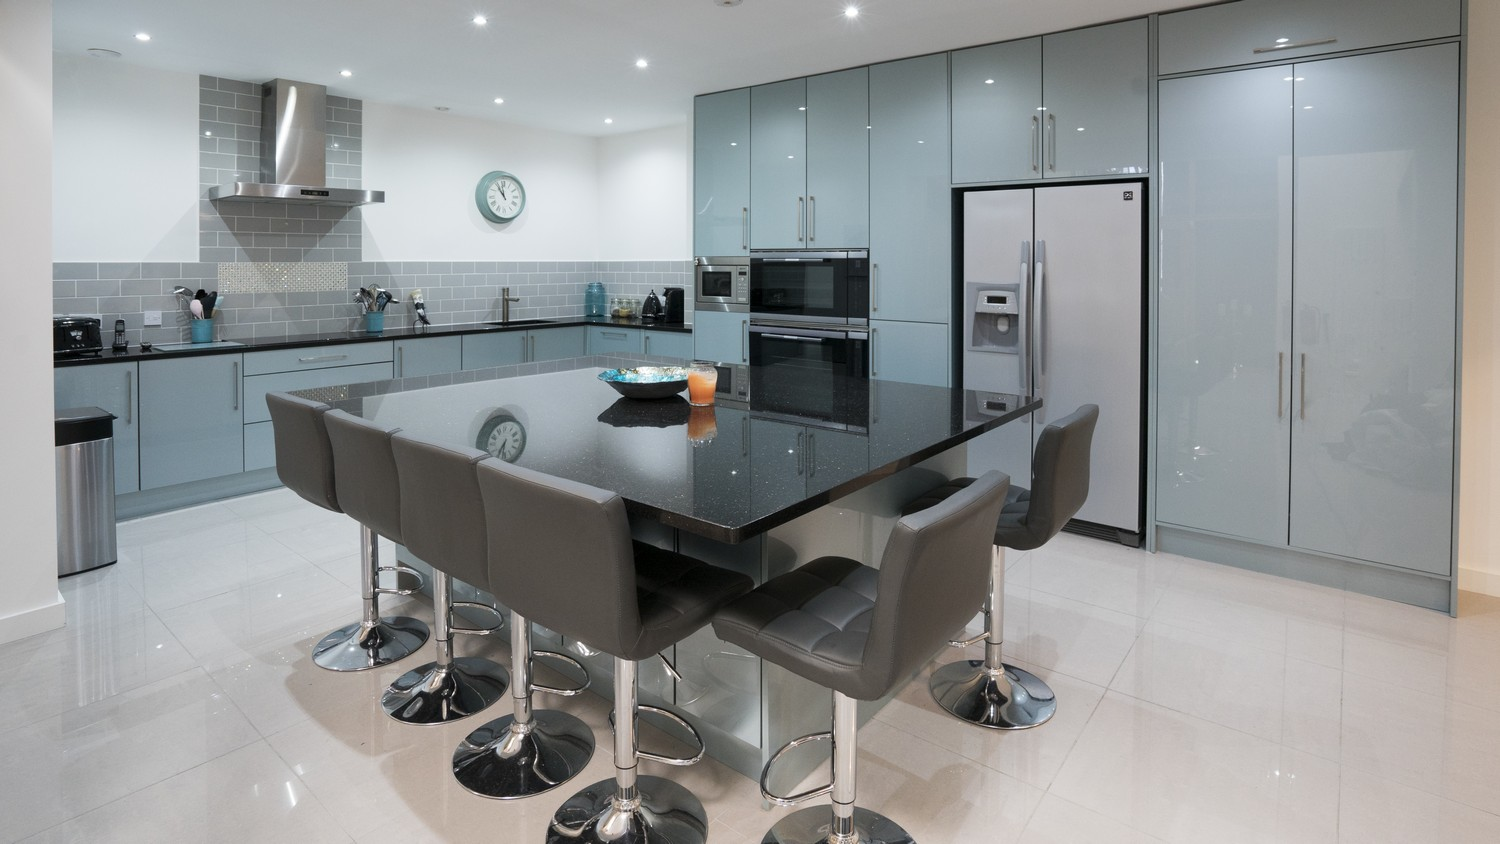 Blue gloss large kitchen with oversized central island with overhang for dining. This kitchen feature black granite work surfaces with lots of storage throughout.